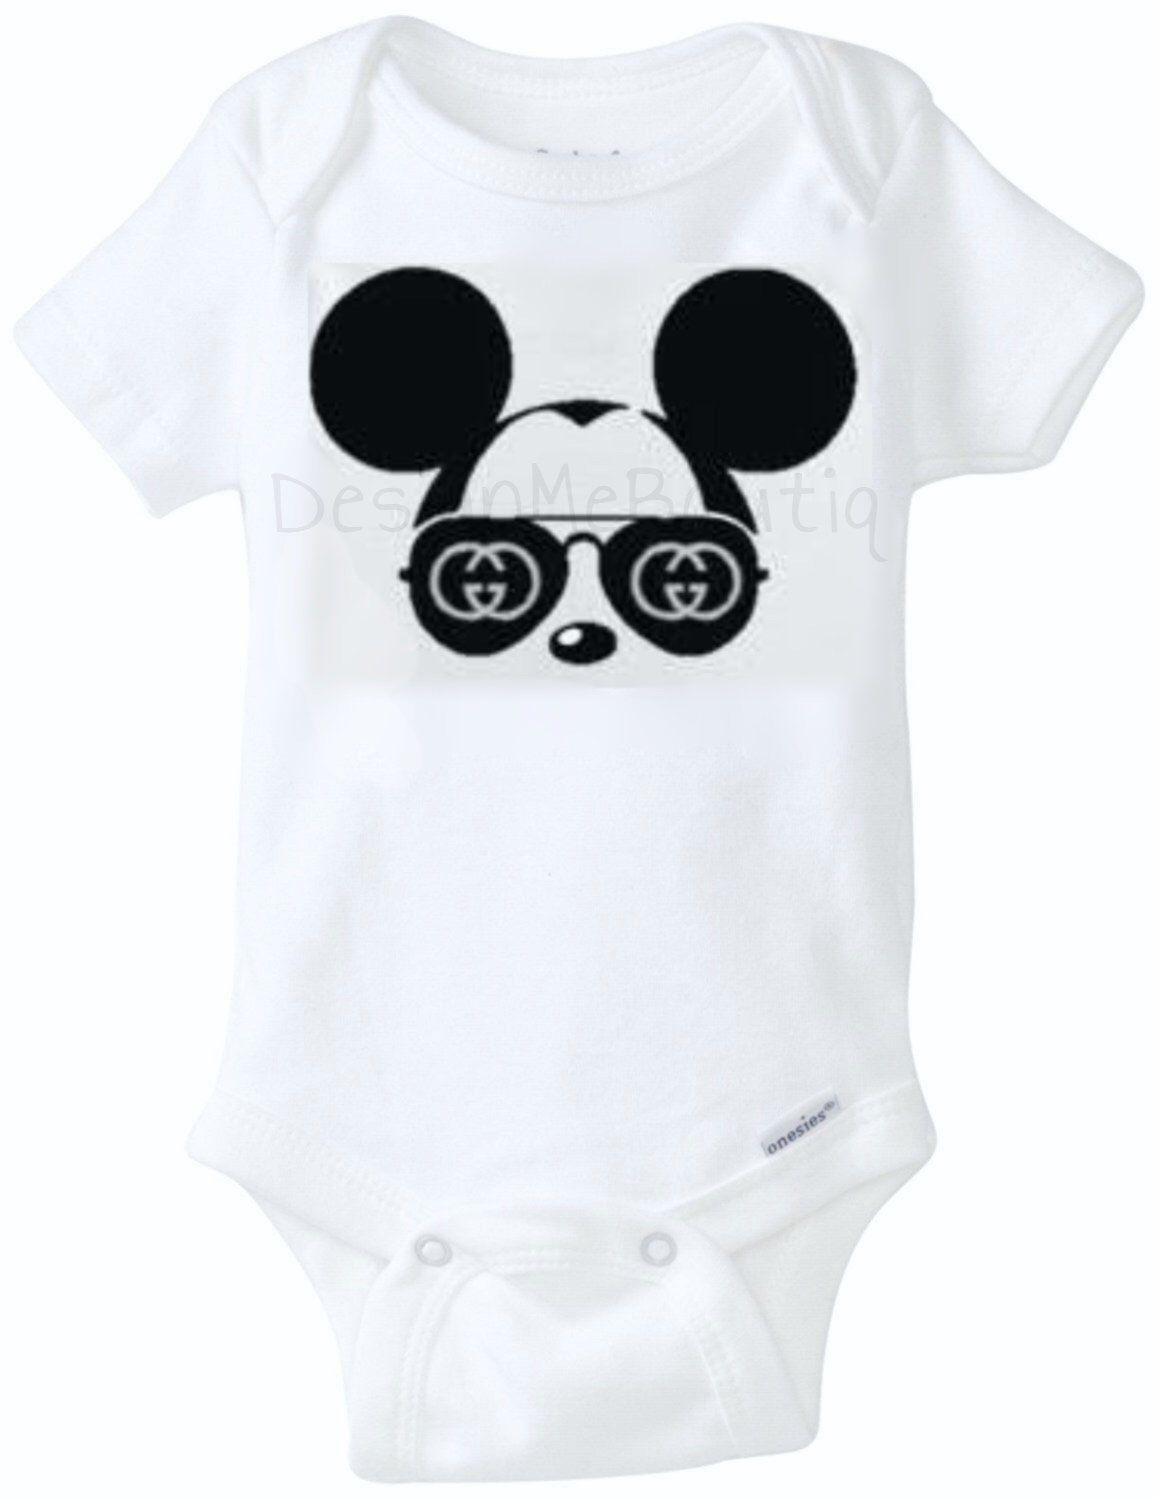 9c0b74561 Mickey Mouse Gucci Baby Onesie inspired Gucci OnesiesBaby Shower Gift Infant  bodysuit fashion vogue baby unisex